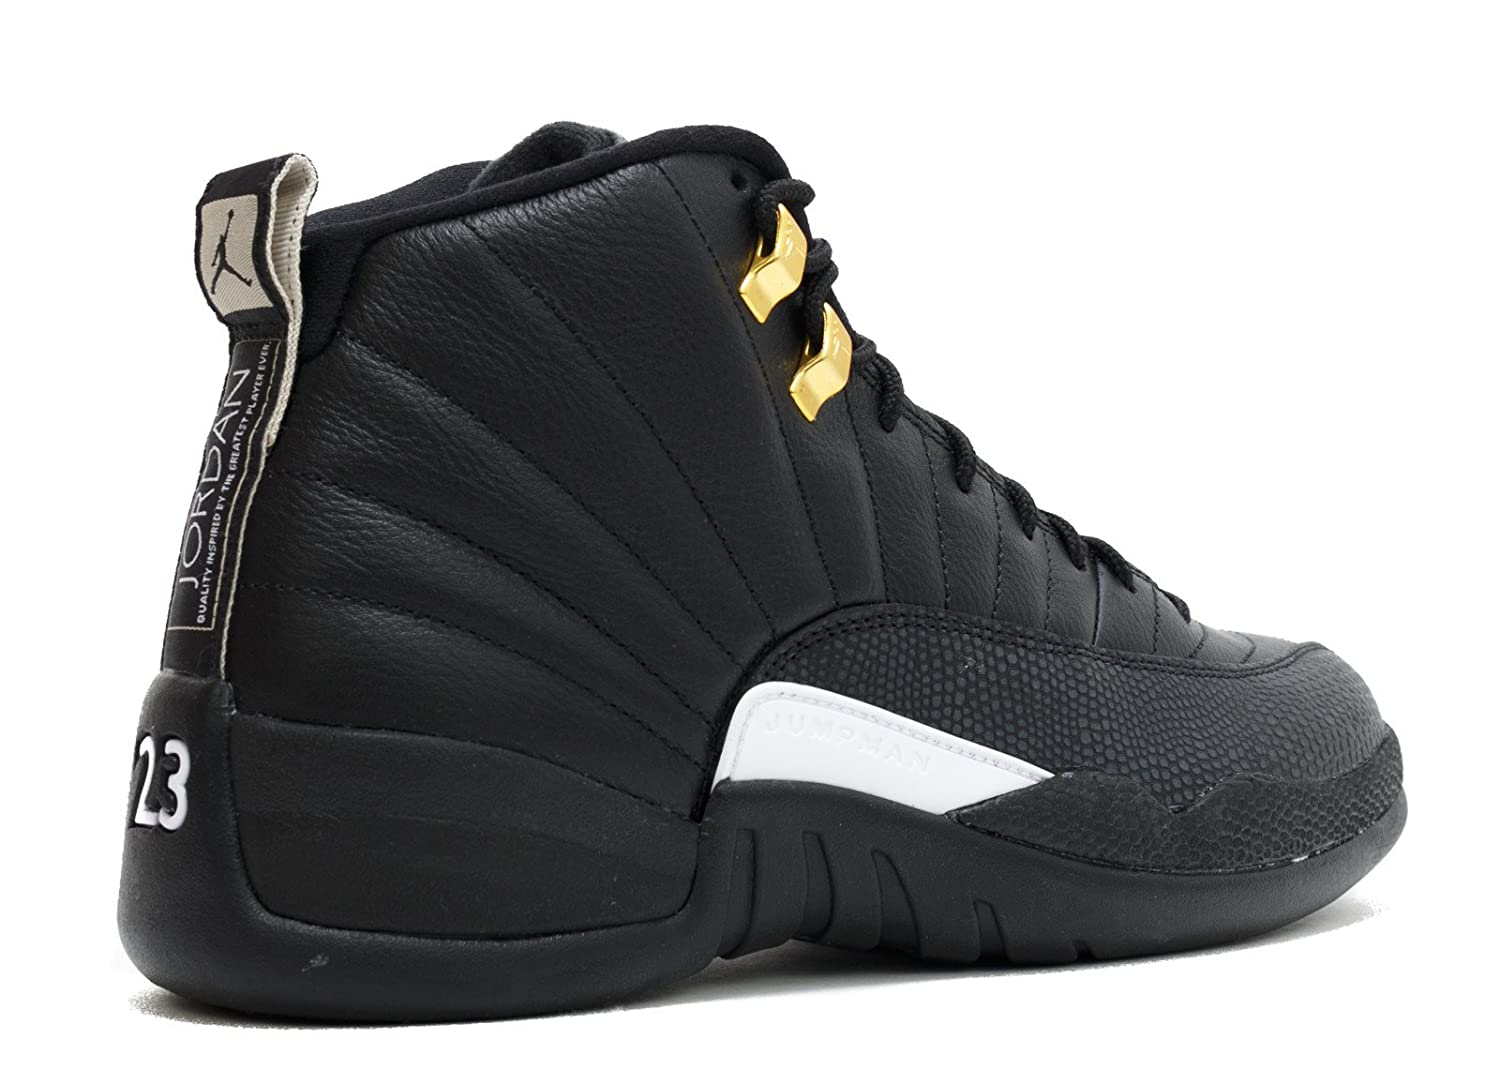 competitive price d9d40 8178f Jordan Men's Air 12 Retro, The Master-Black/White-Black-Metallic Gold (18)